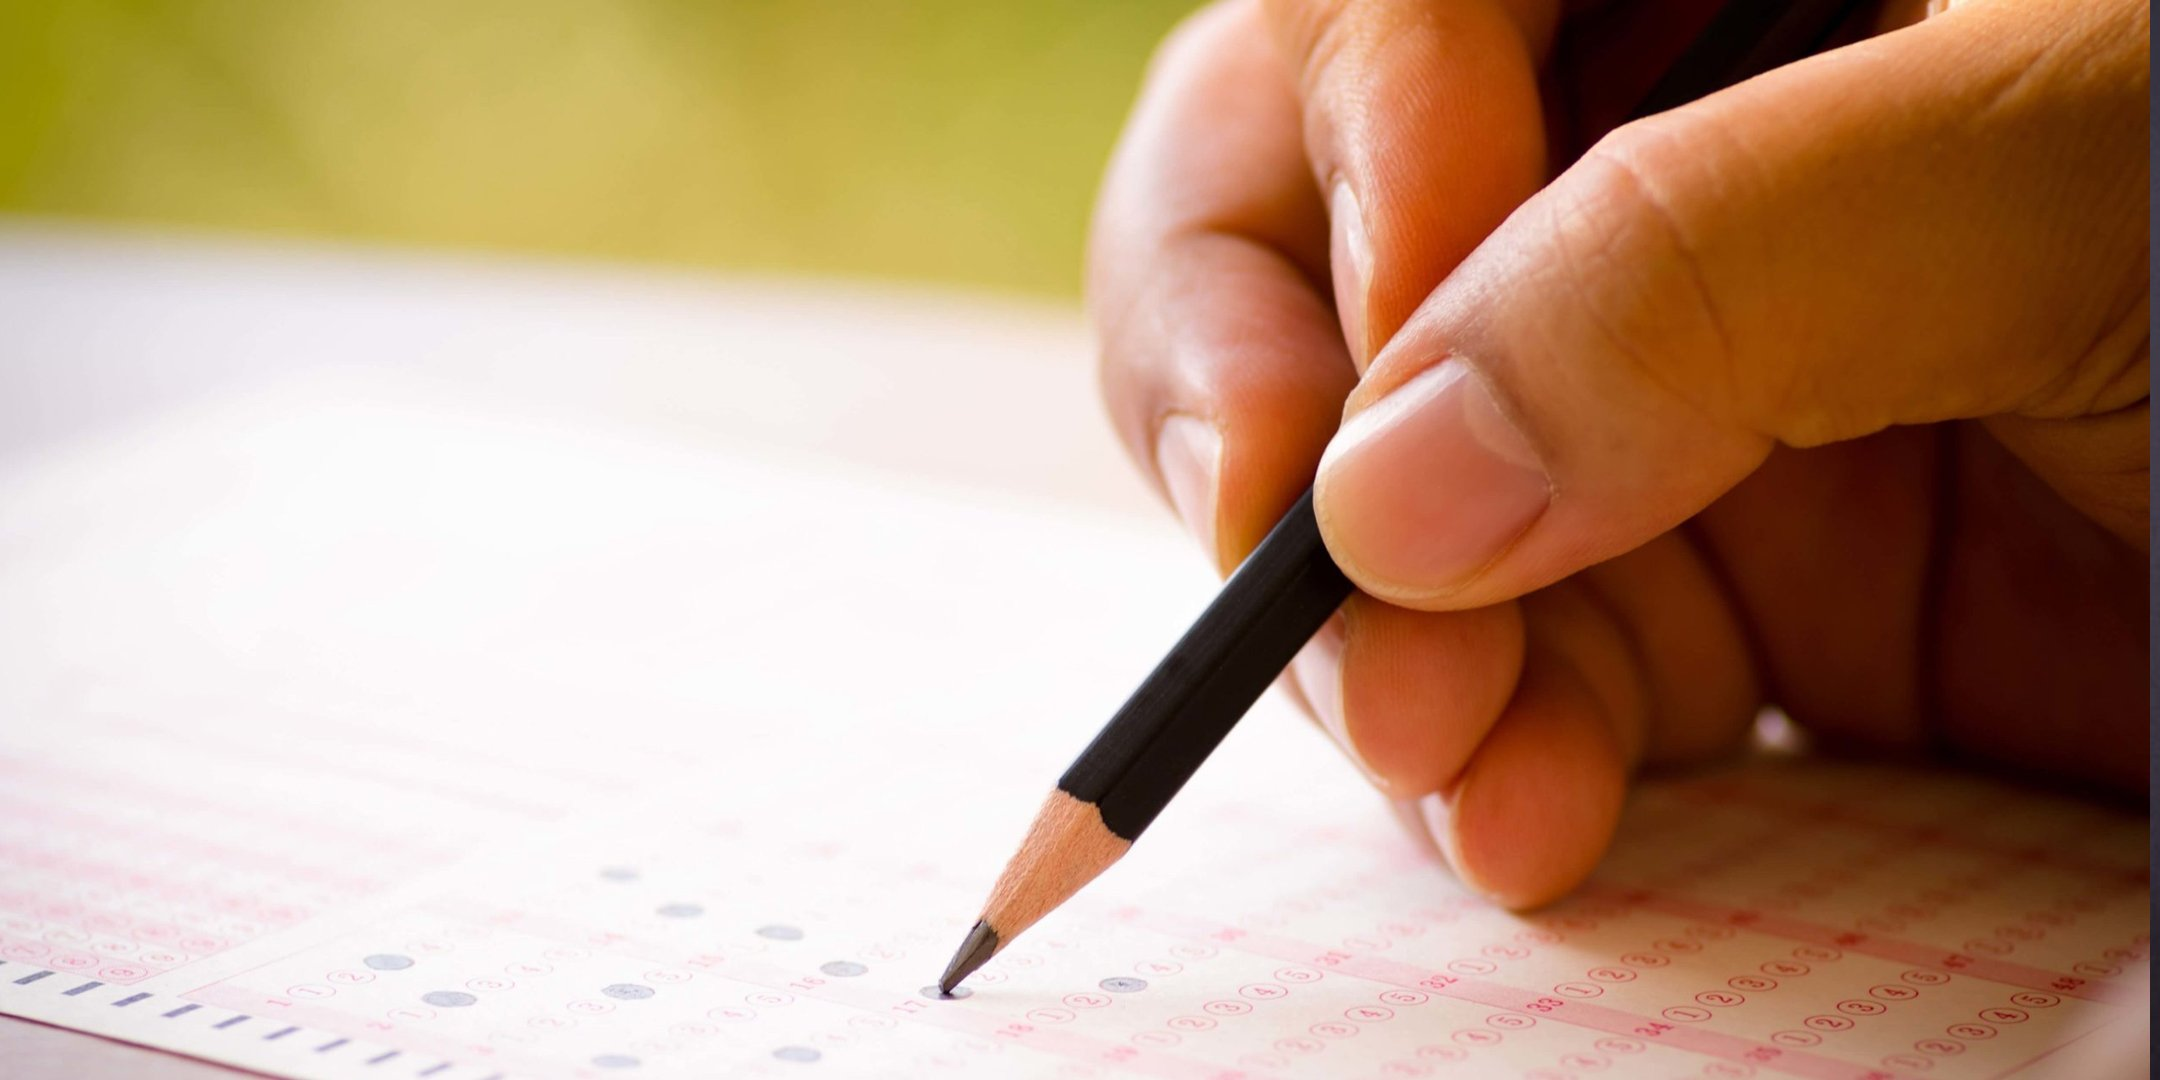 A person taking the multiple-choice APM PFQ Exam.